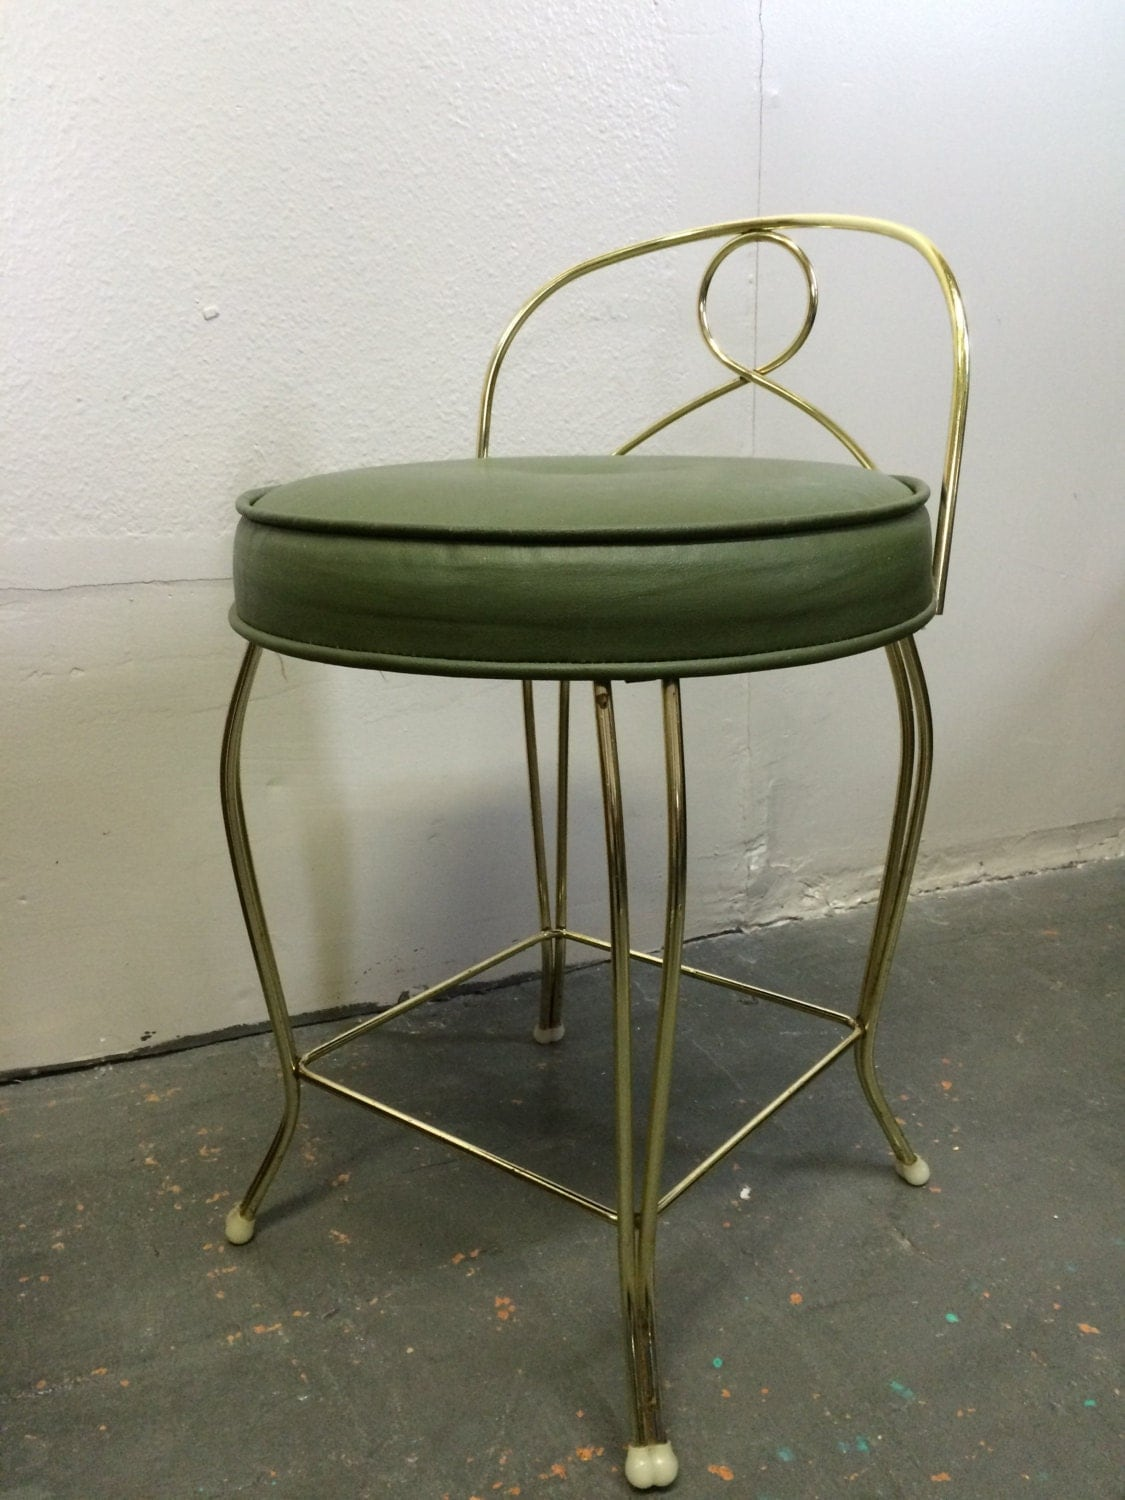 Mid century modern vintage vanity chair stool with green seat brass finish by koch haute juice - Antique vanity stools ...